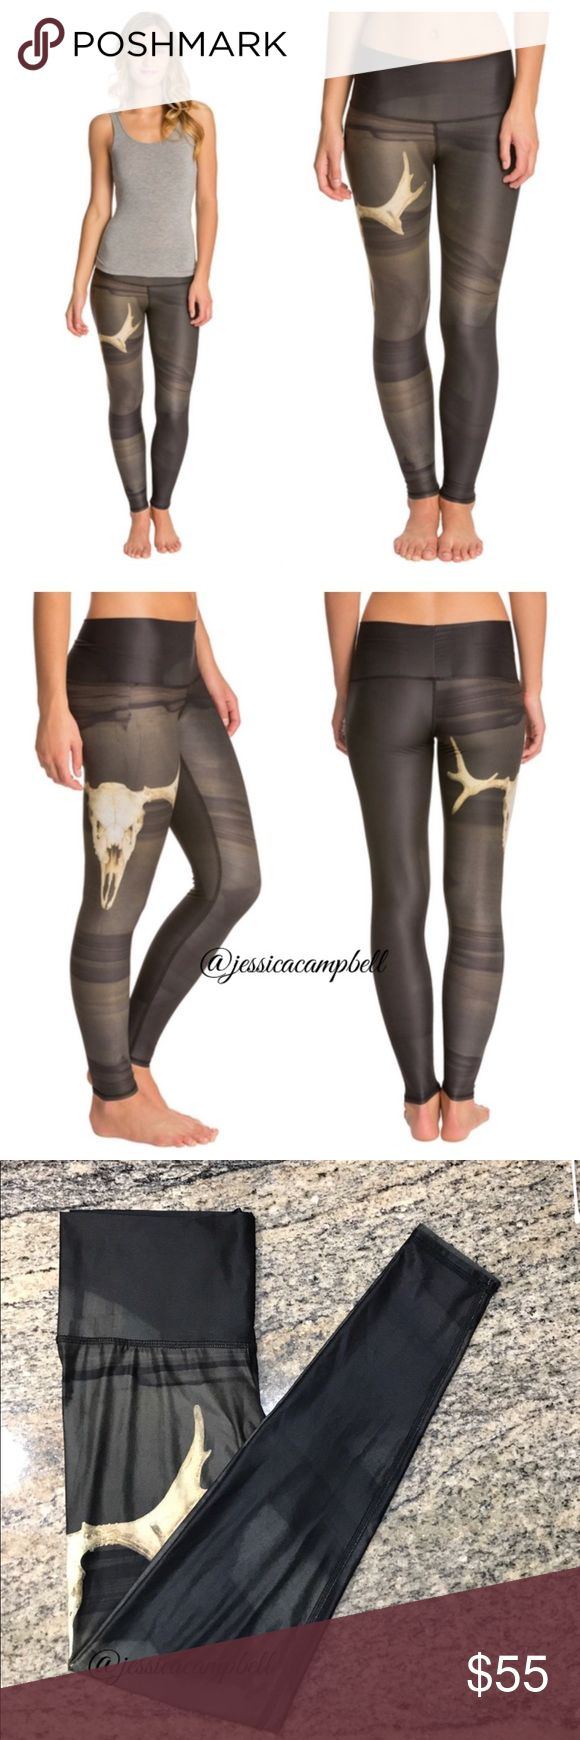 Teeki Deer Medicine Yoga Leggings Make a statement in the studio with these yoga leggings. Comfortable high waist and and bold print make these fashionable and functional. Full length, graphic skull print, all over sheen, thick elastic free waistband. Breathable, four way stretch material. Tight fit. Excellent condition. All reasonable offers are welcome! Please make all offers through the offer button🤗 teeki Pants